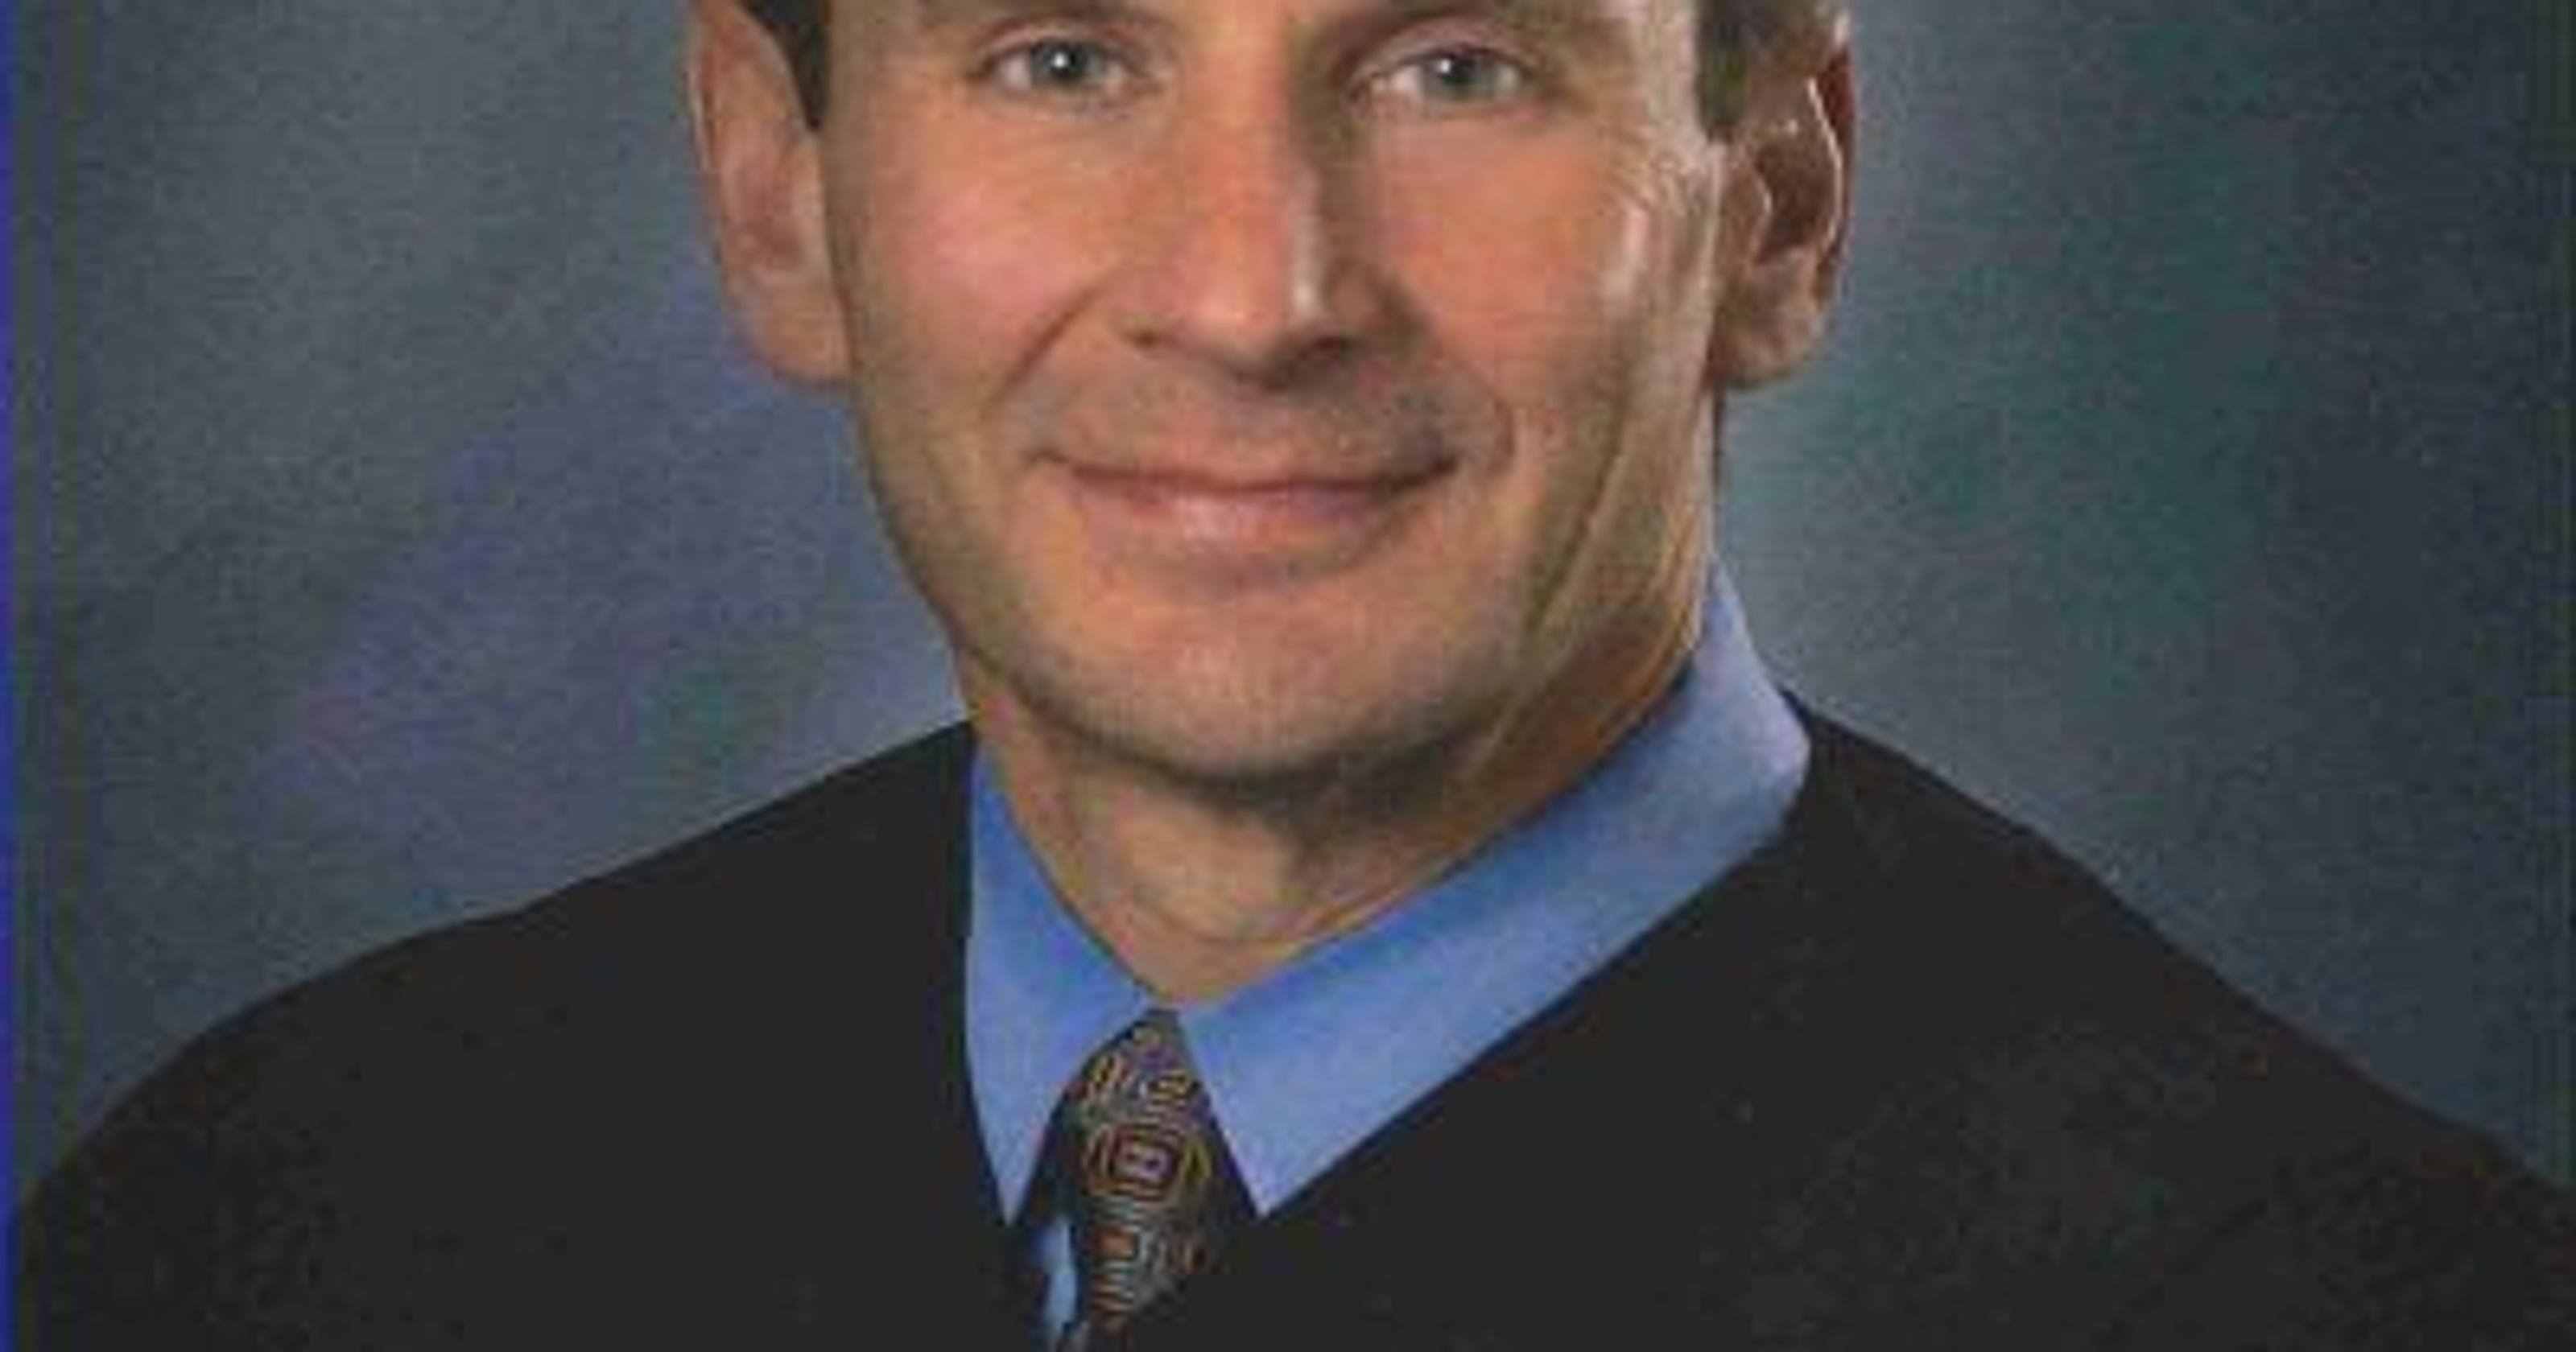 Greene County Circuit Judge appointed by Nixon